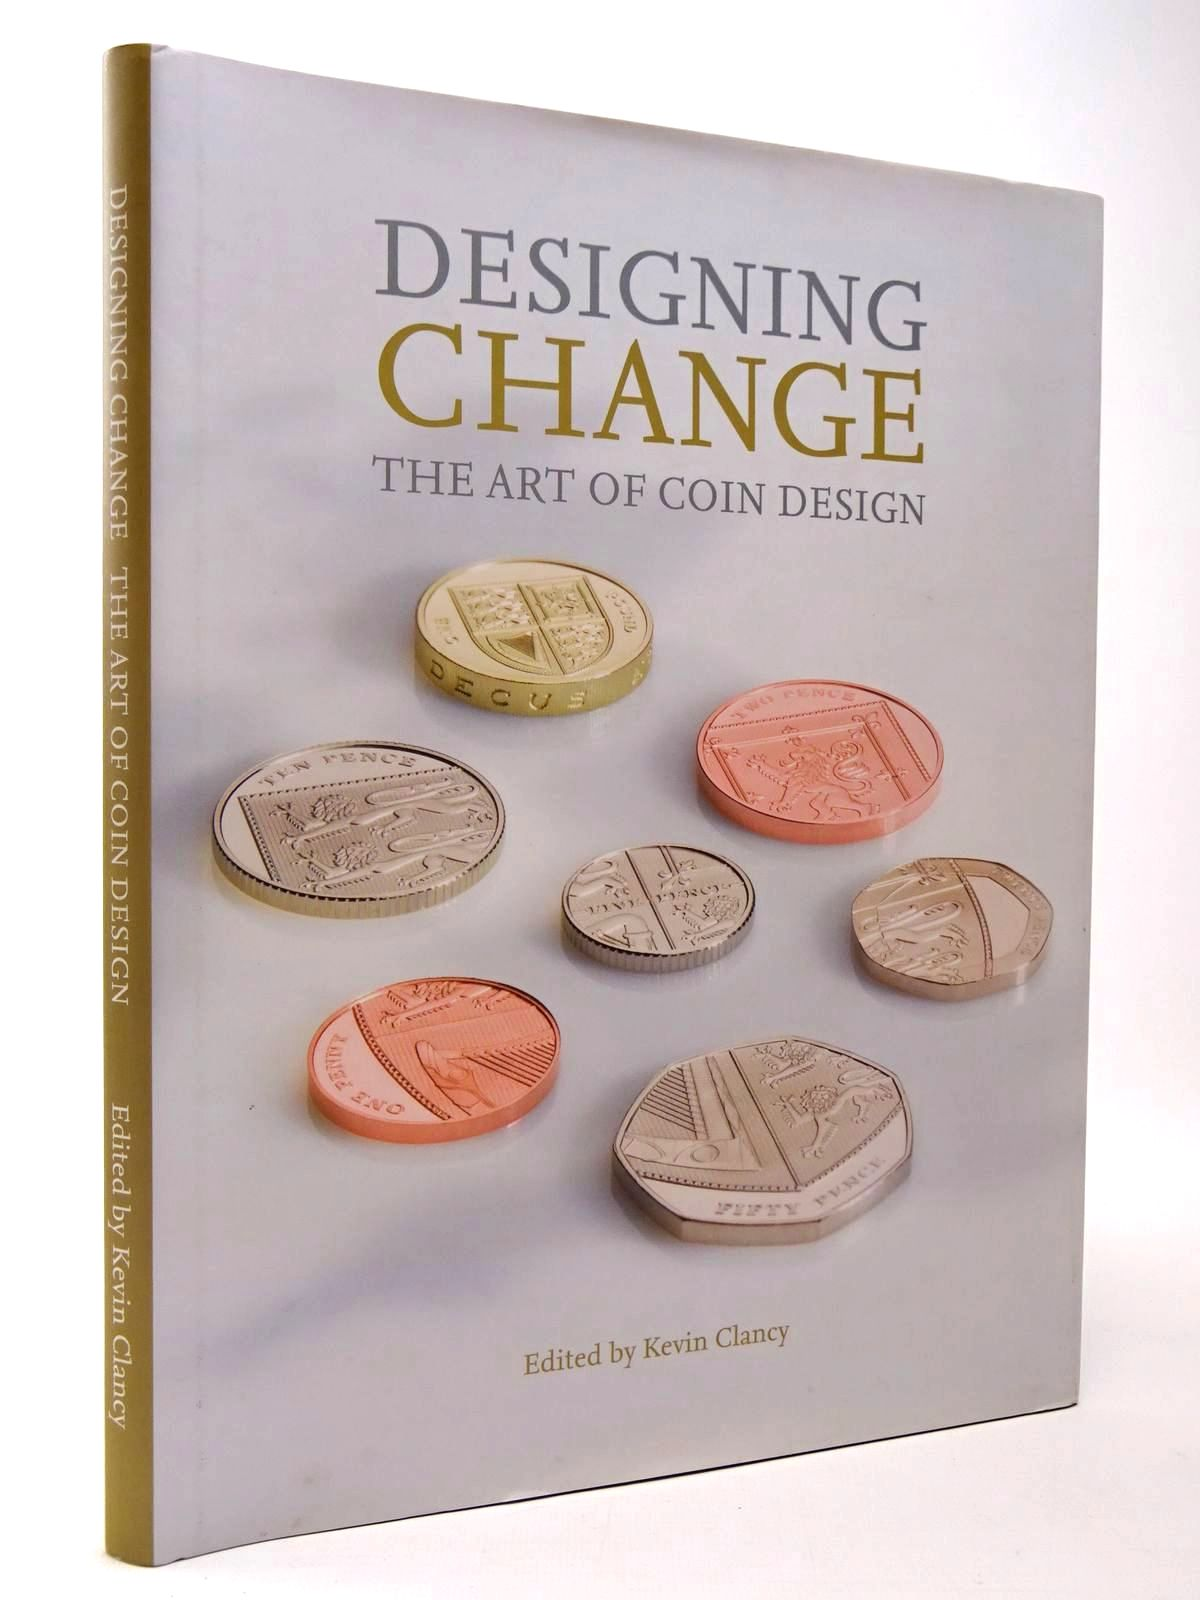 Photo of DESIGNING CHANGE THE ART OF COIN DESIGN written by Clancy, Kevin published by Royal Mint (STOCK CODE: 2129953)  for sale by Stella & Rose's Books